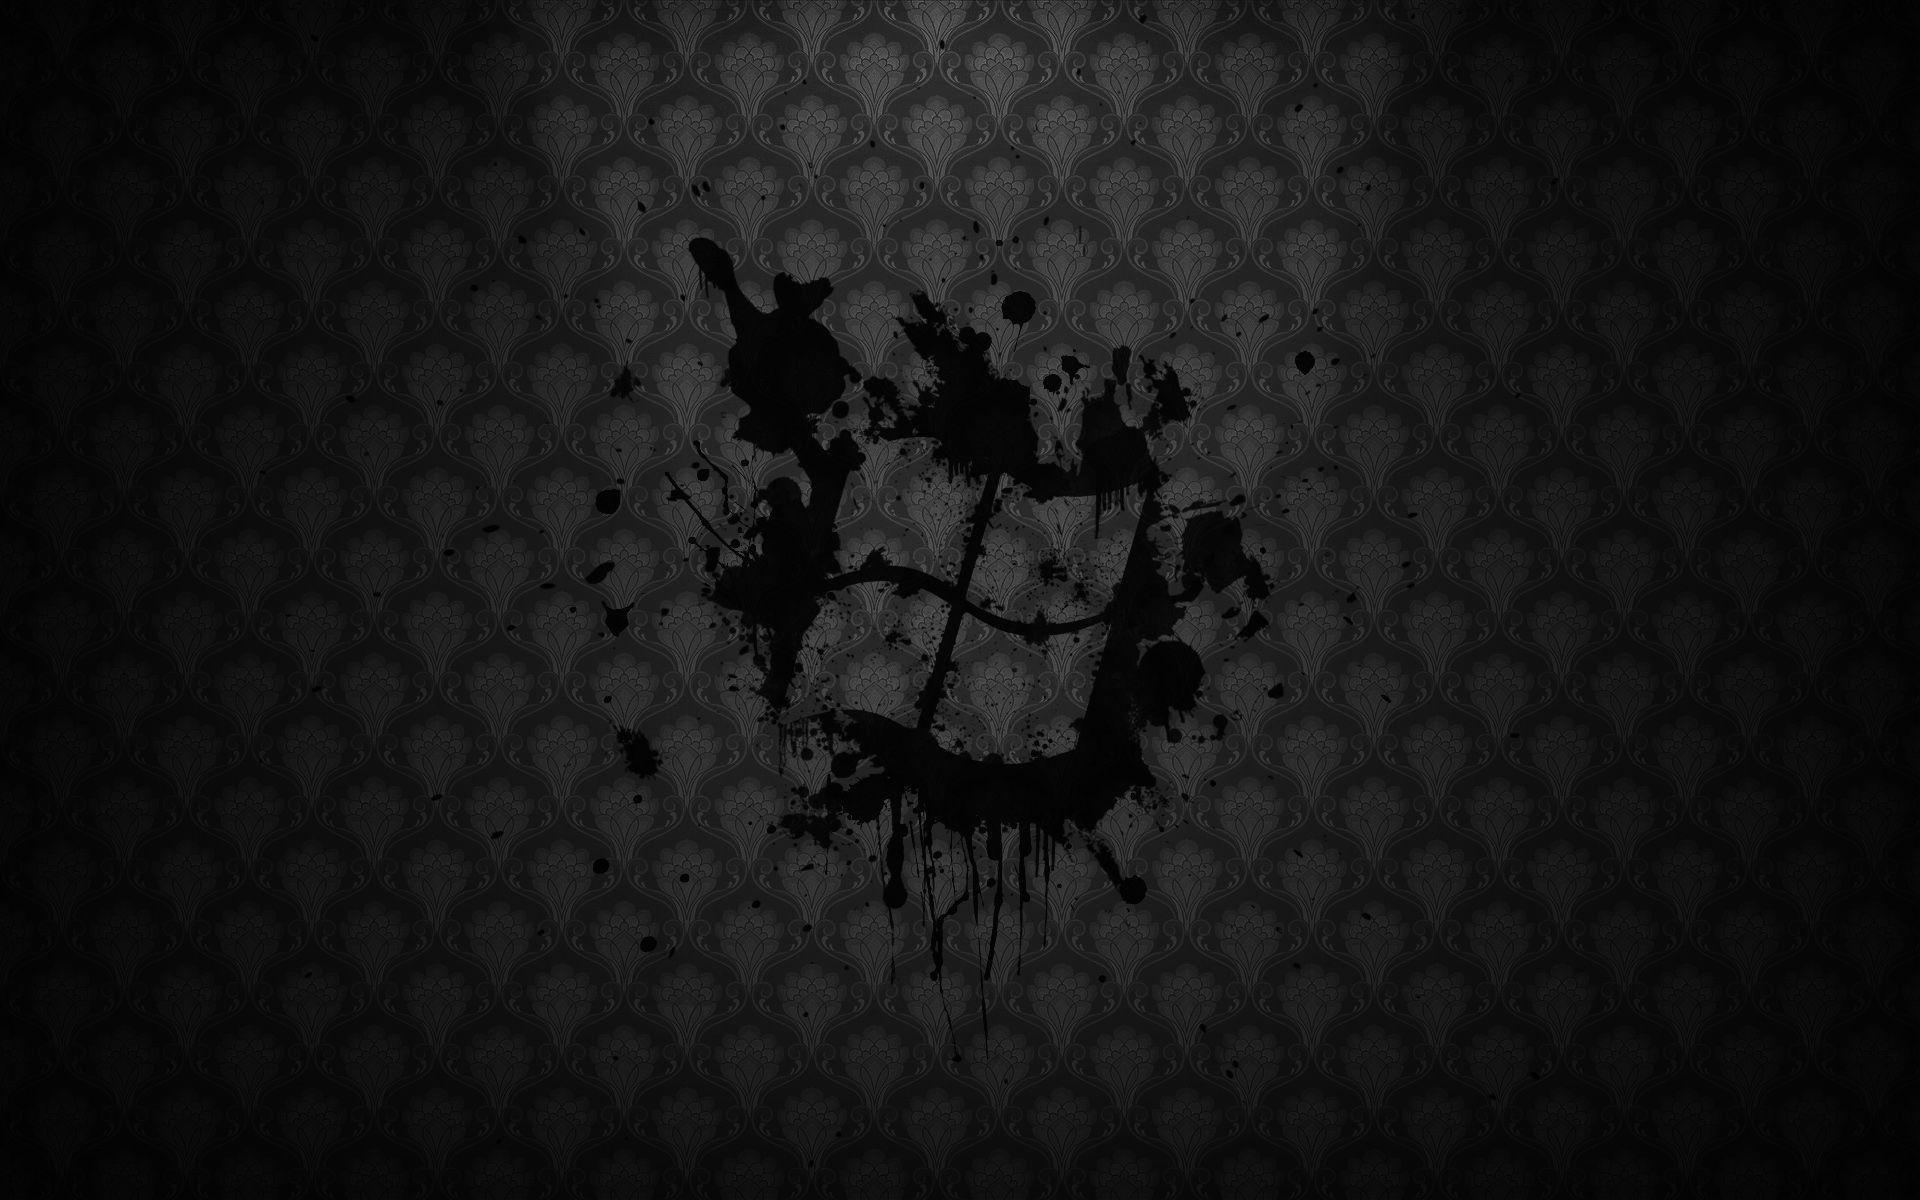 Logos For > Windows Logo Wallpapers Black